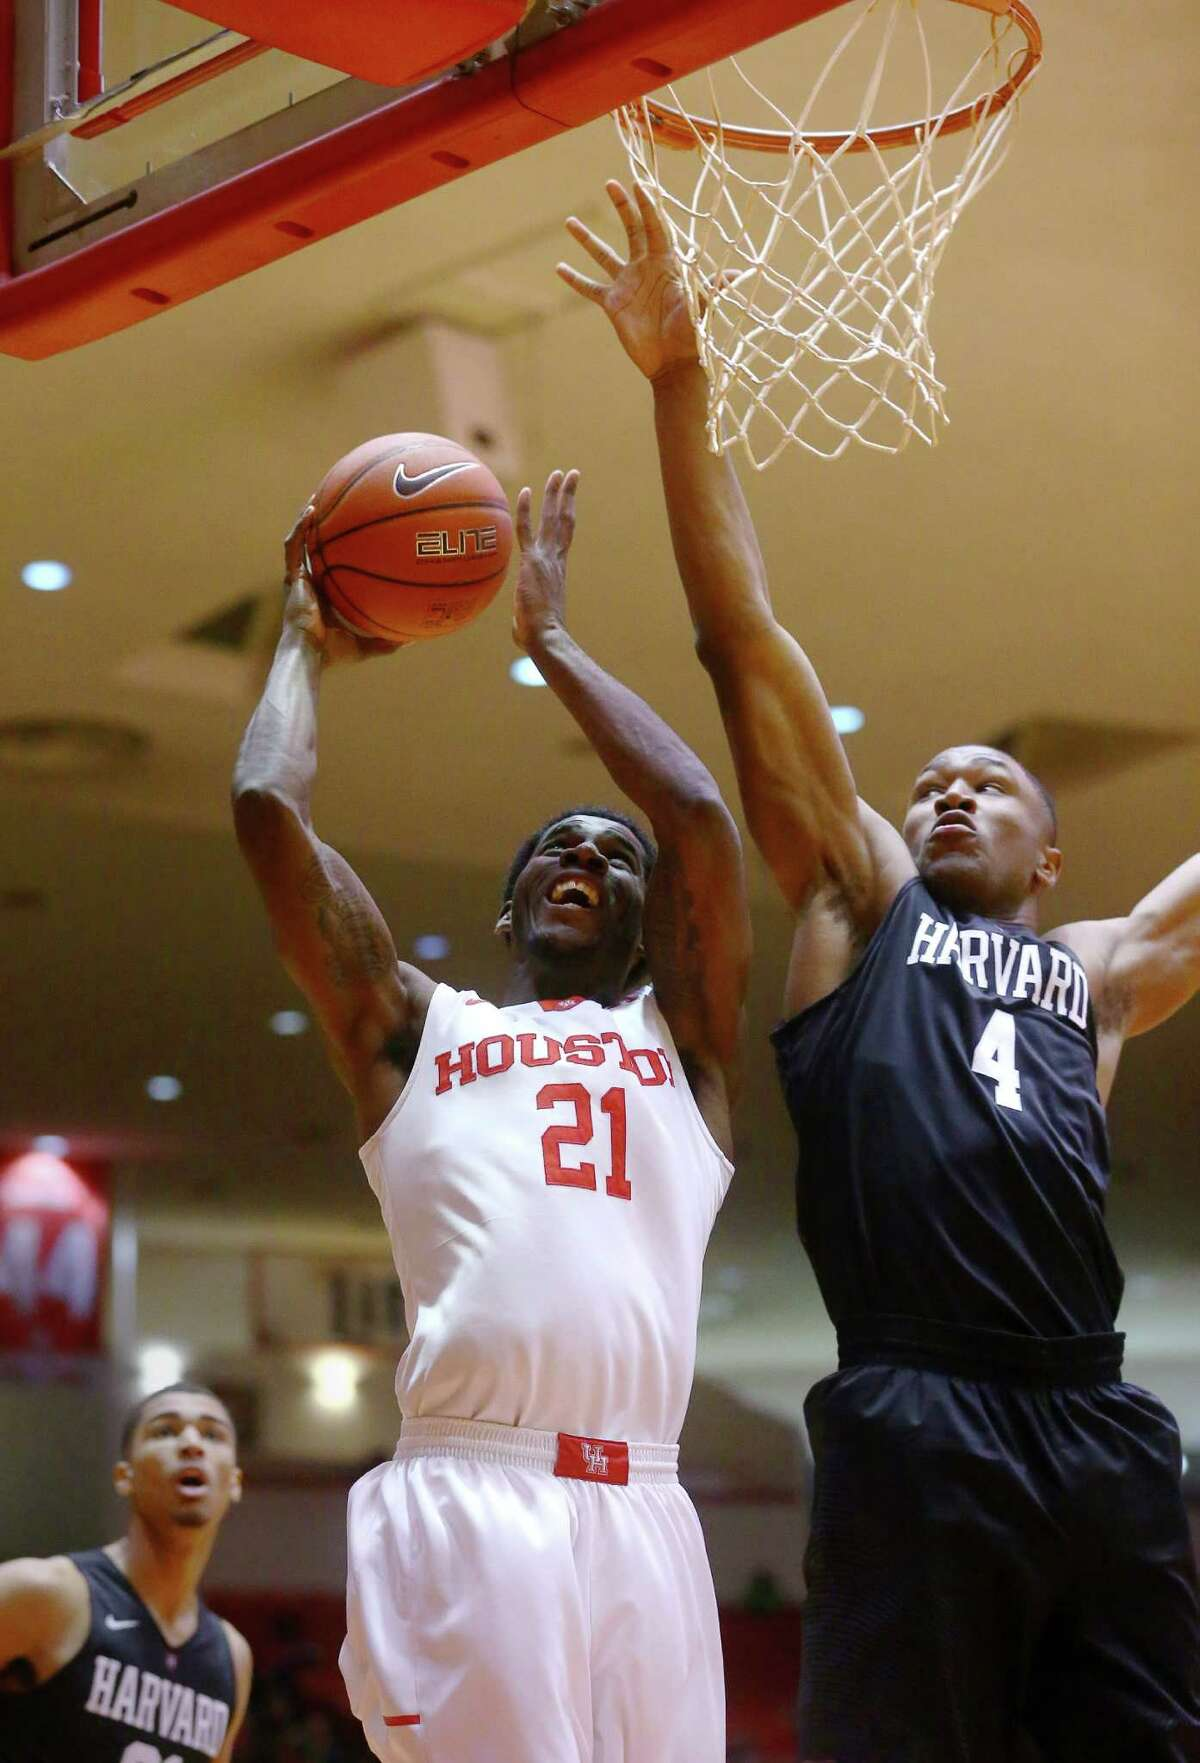 Houston Cougars guard Damyean Dotson (21) drives to the basket while guarded by Harvard Crimson forward Zena Edosomwan (4) during the first half of an NCAA basketball game at Hofheinz Pavilion, Friday, Dec. 23, 2016, in Houston.